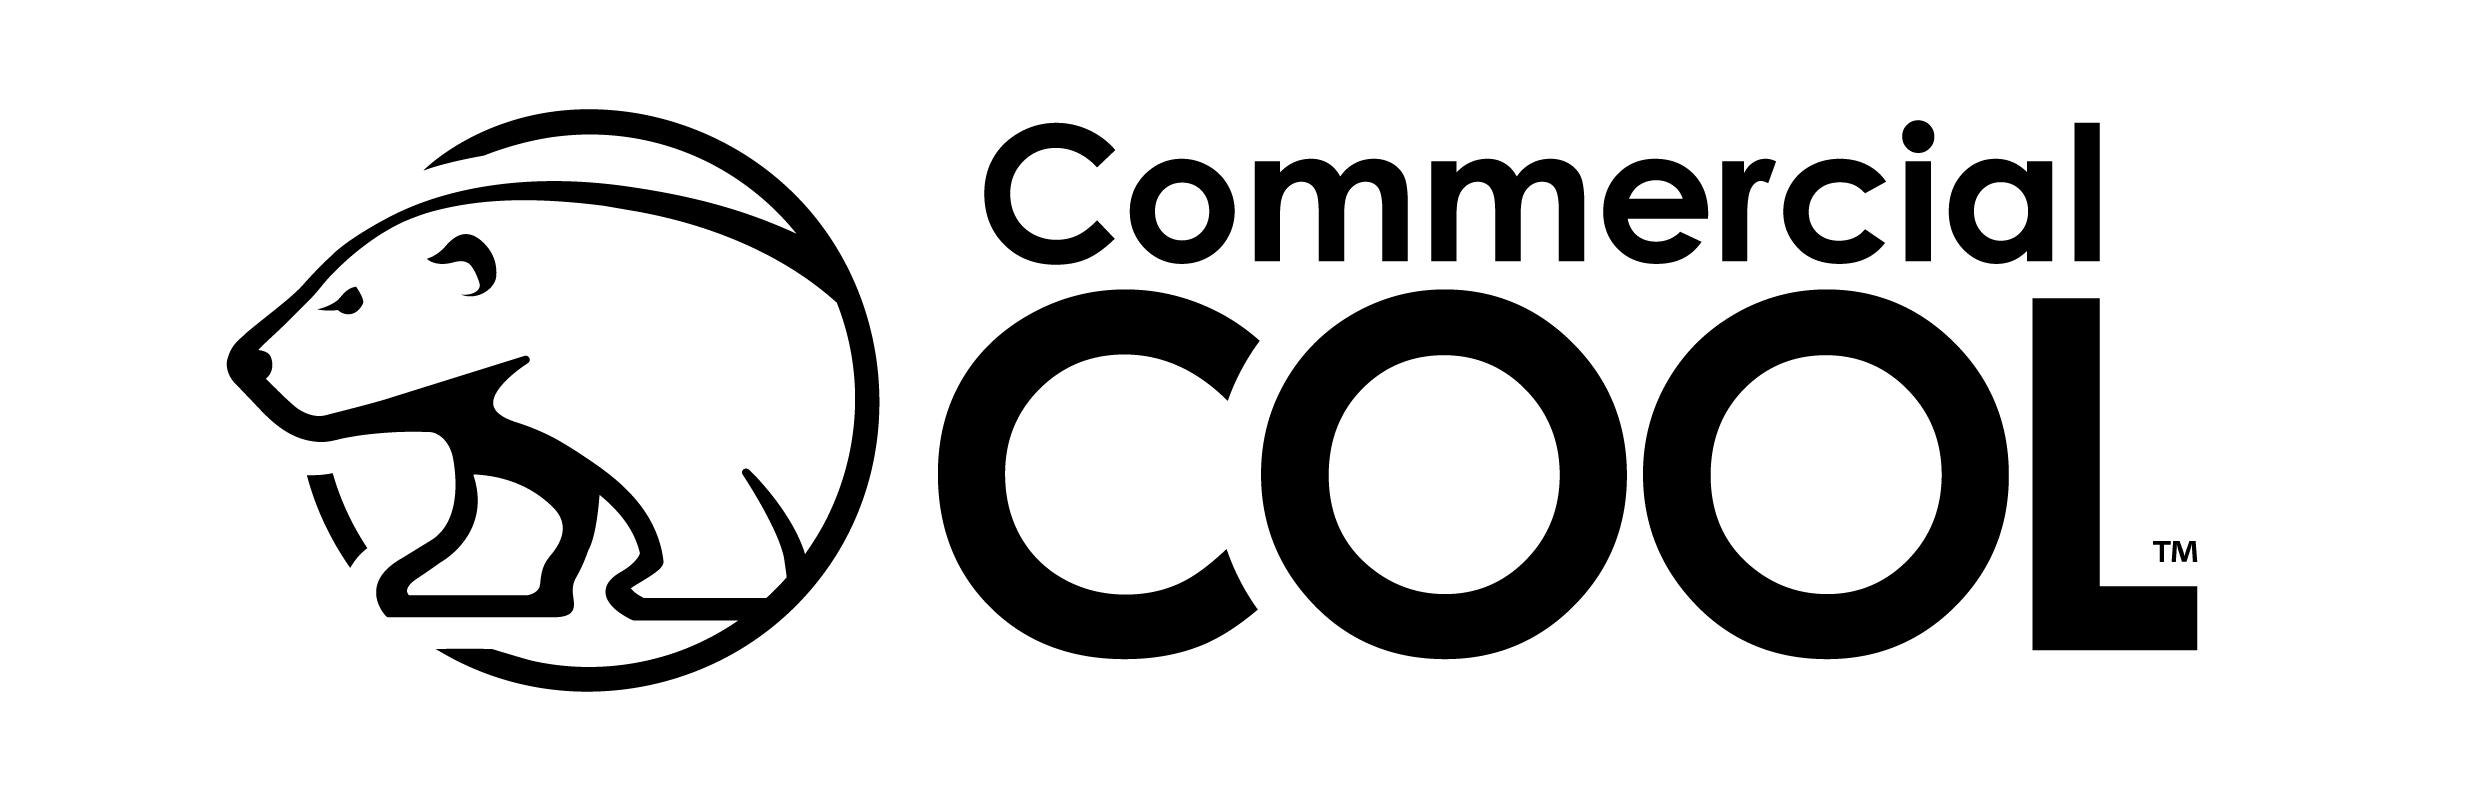 COMMERCIALCOOL_K-01.png